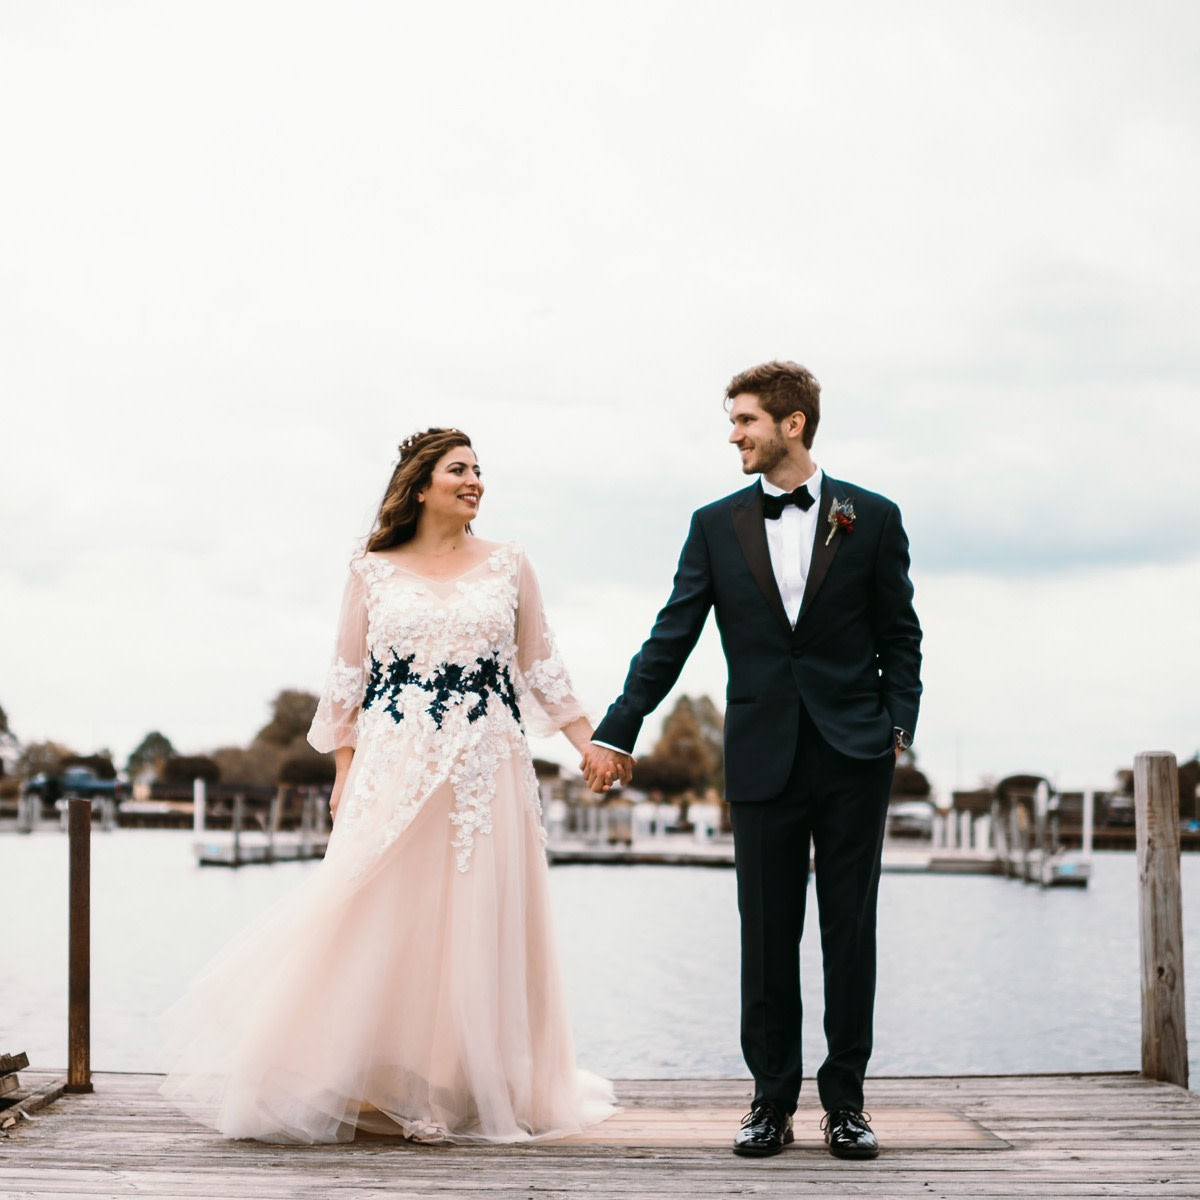 Alexandria wears her custom-designed Anomalie wedding dress. Photo: Maddie Blecha Photography